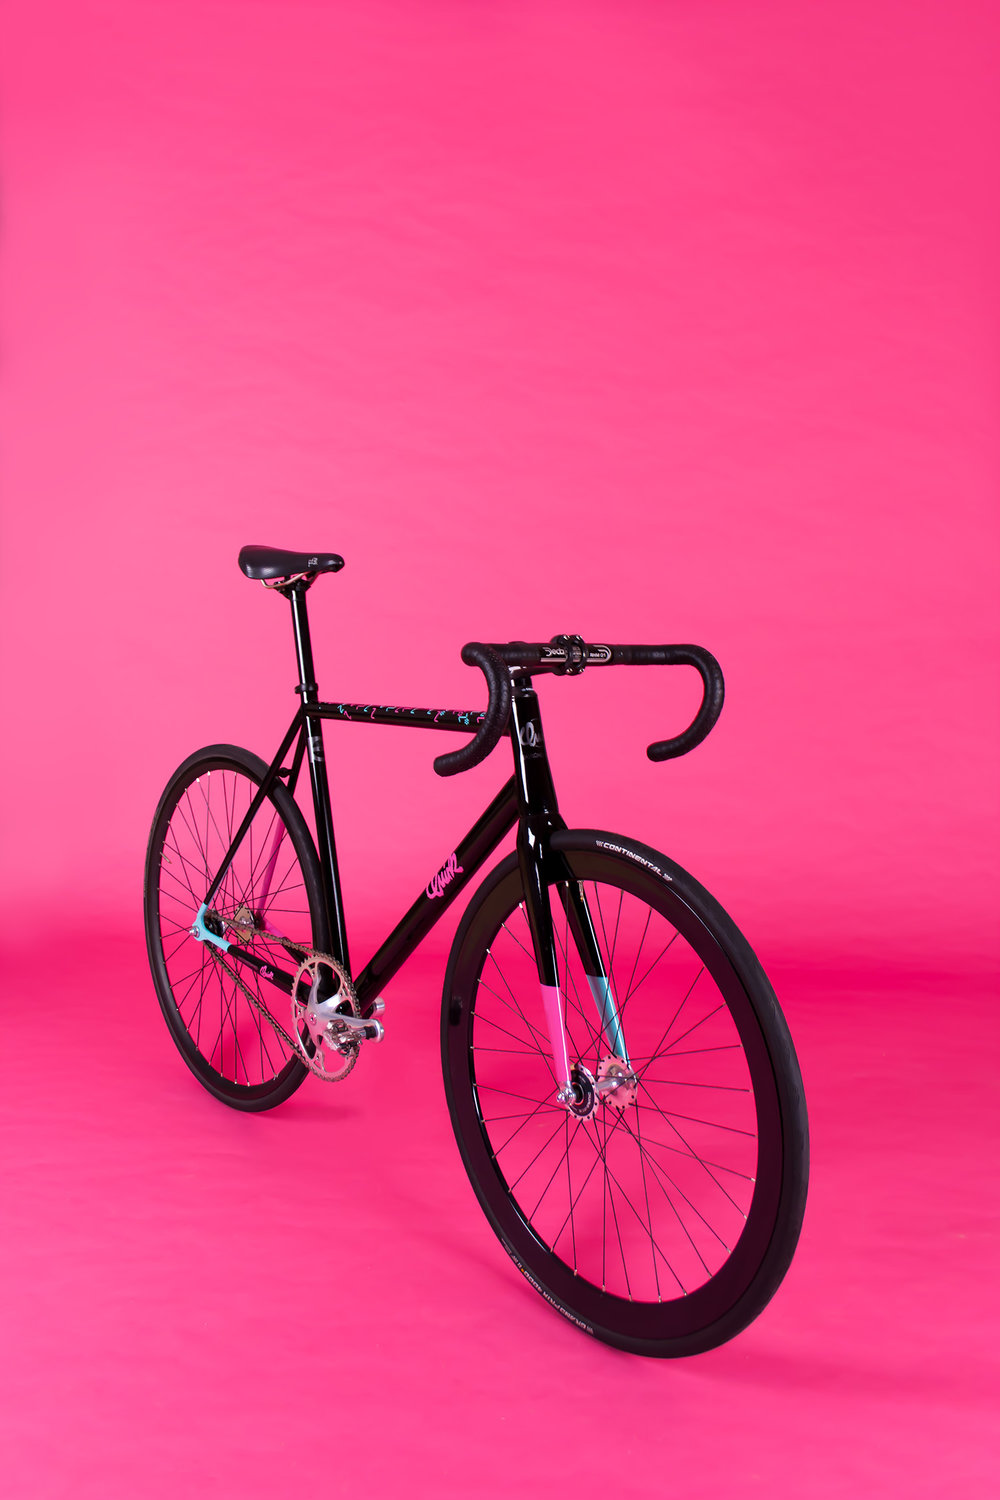 quirk_cycles_elf_proto_pink_web_0006.jpg